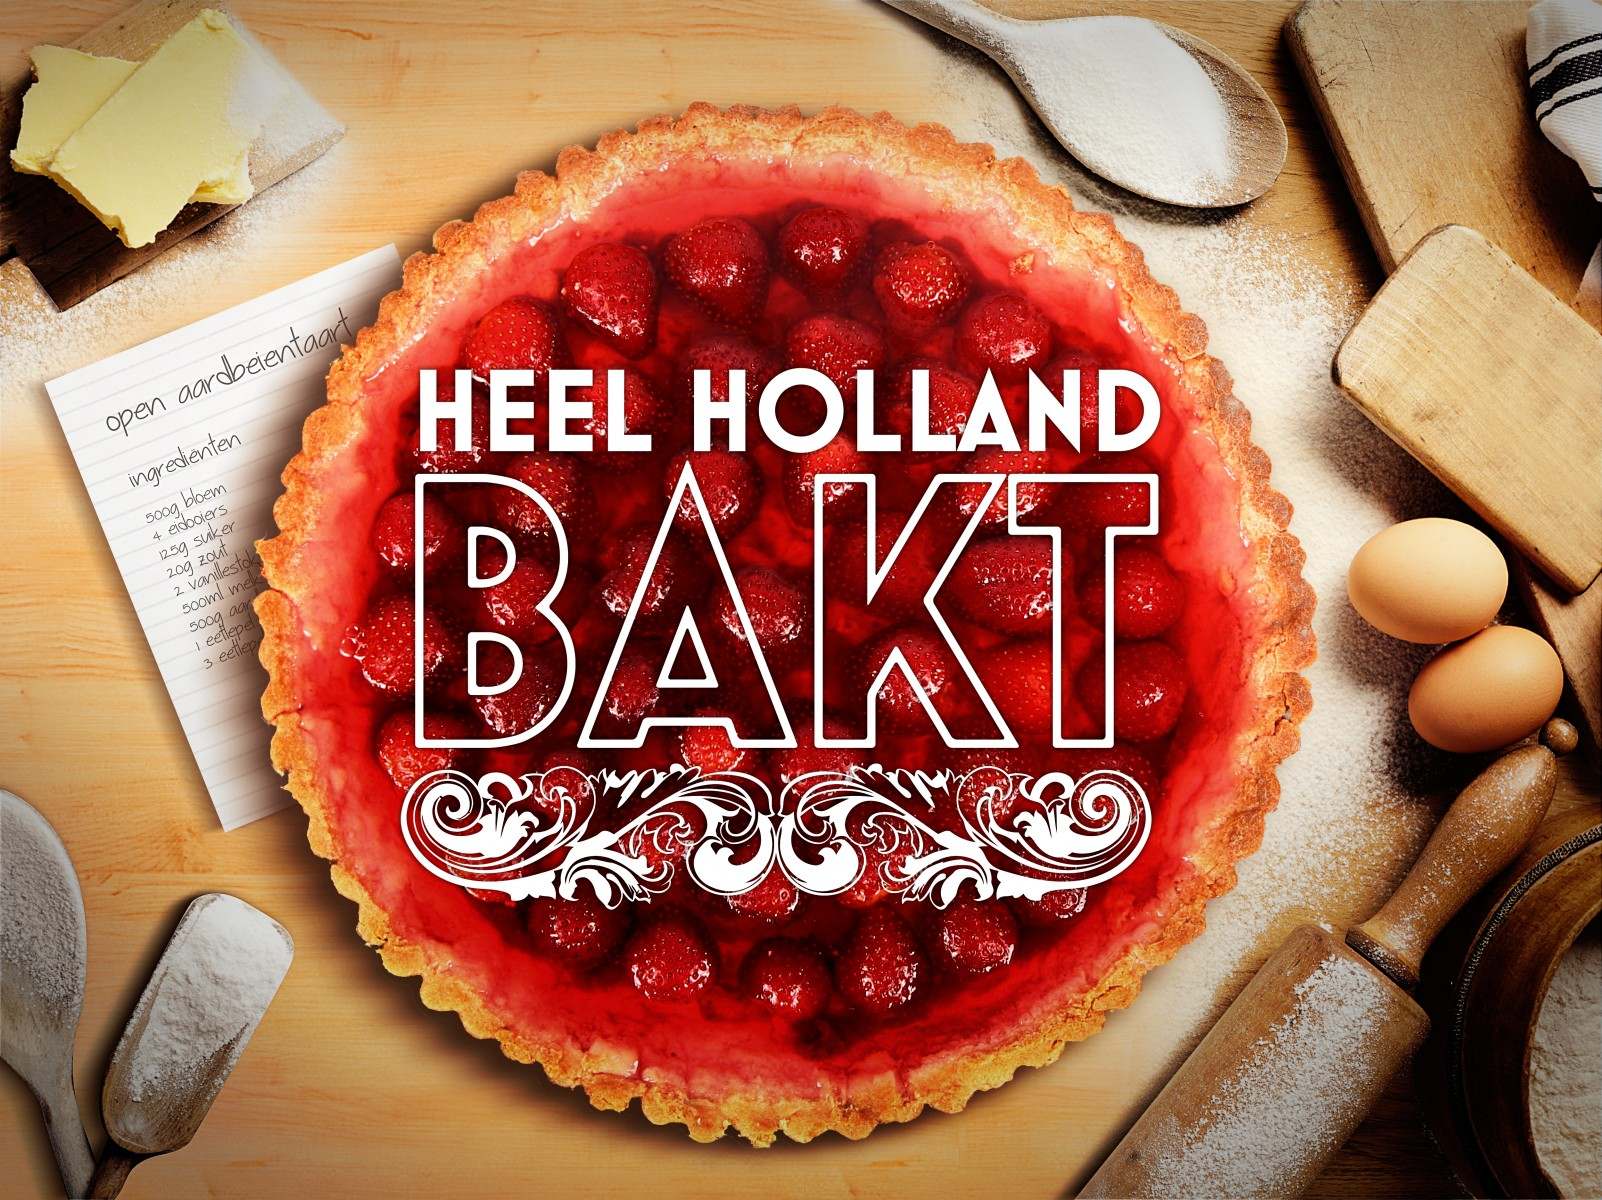 Heel Holland Bakt Logo